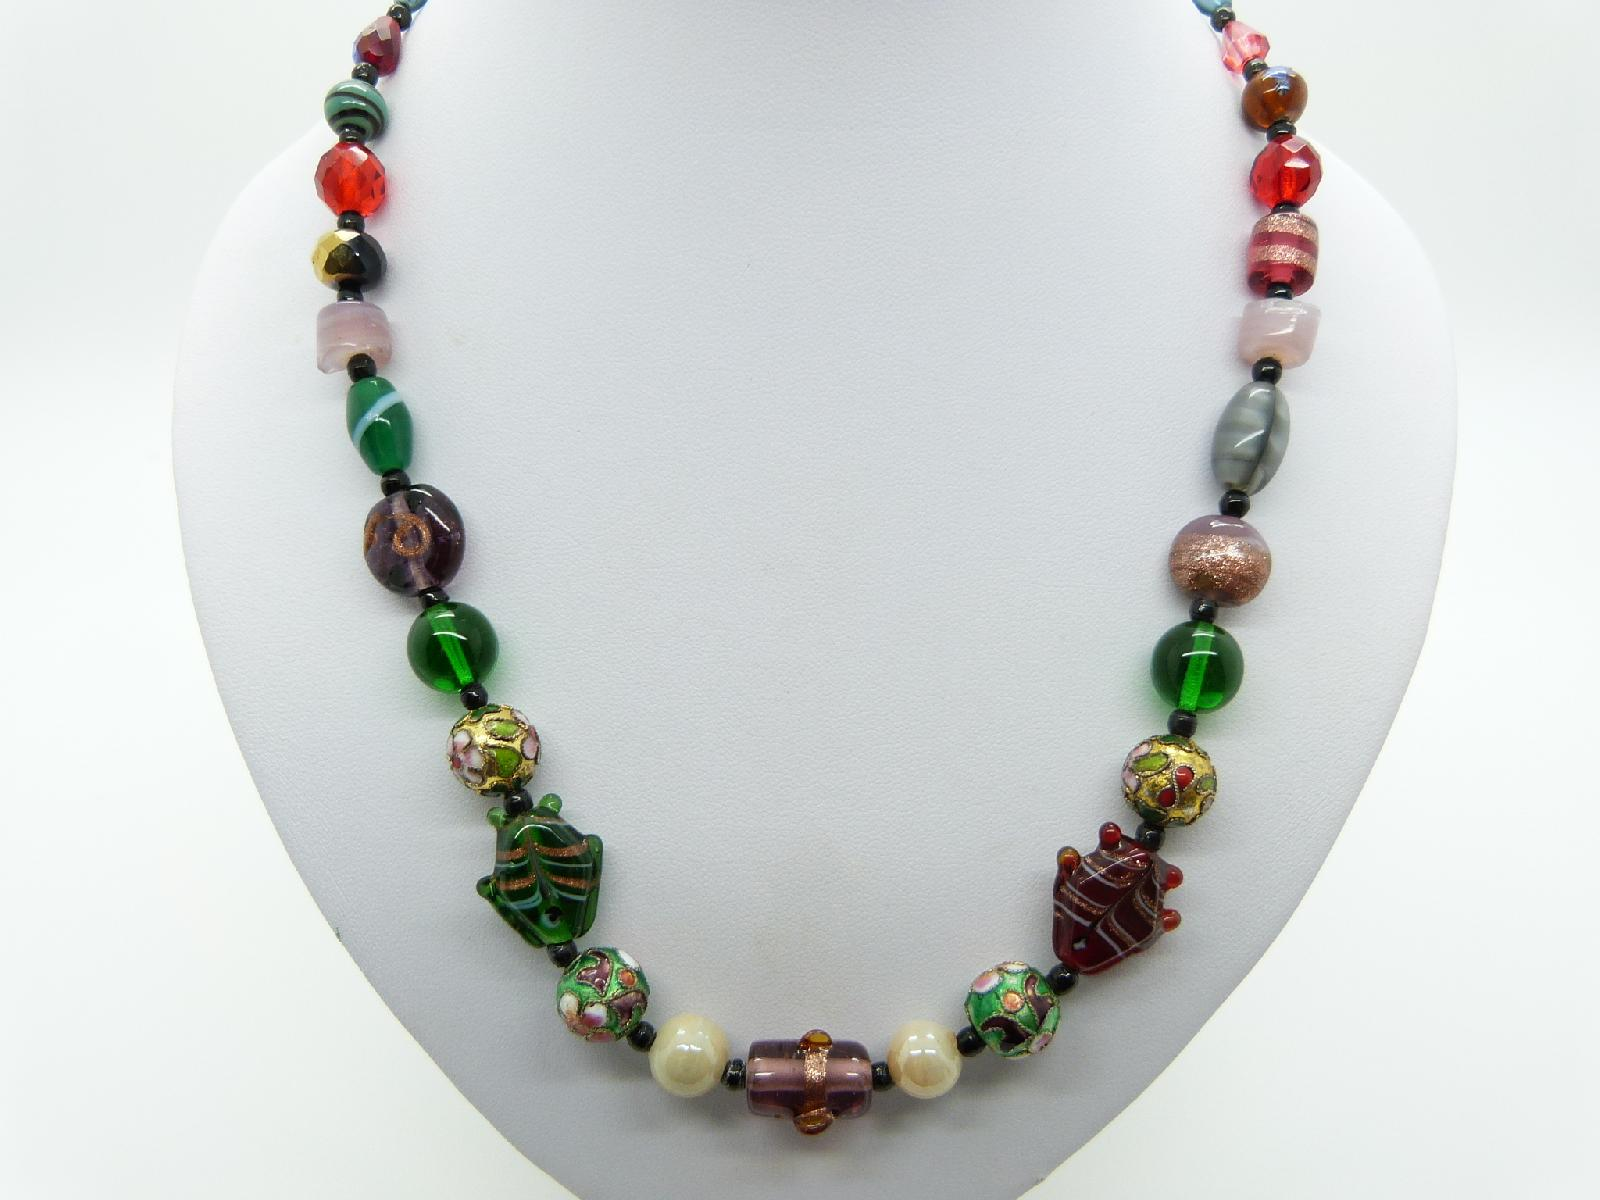 £24.00 - Vintage Redesigned Unusual Multicoloured Murano Glass and Cloisonne Necklace